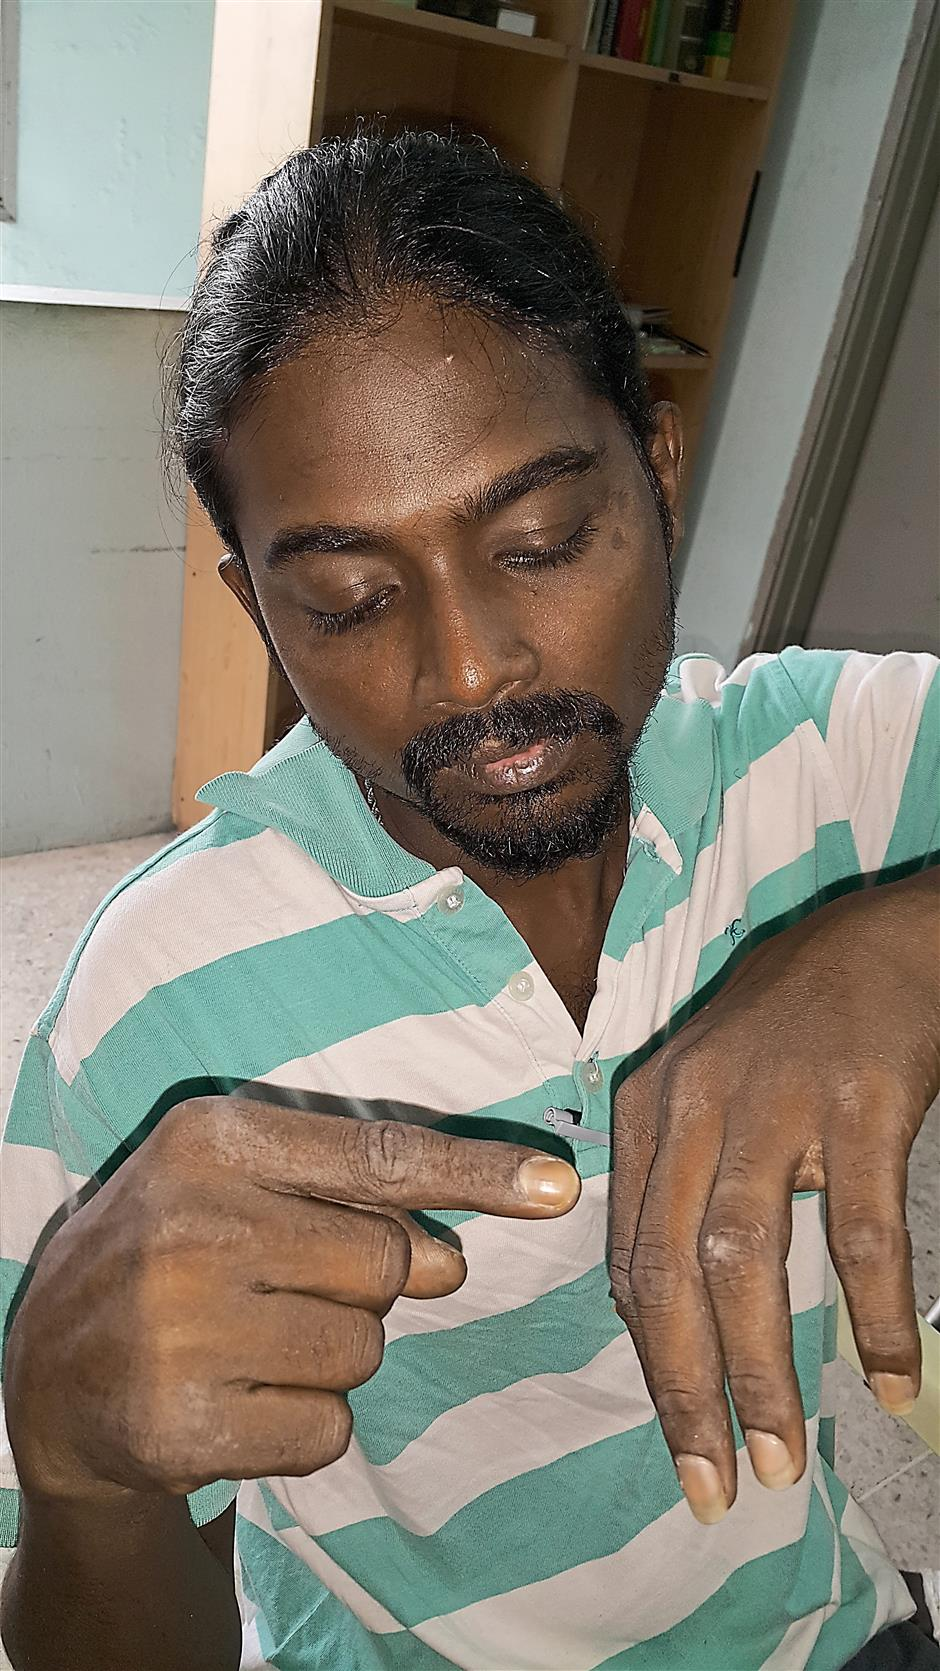 Victim: Meganathan showing his finger which was bitten by a rat while receiving treatment at the Tengku Ampuan Rahimah Hospital.